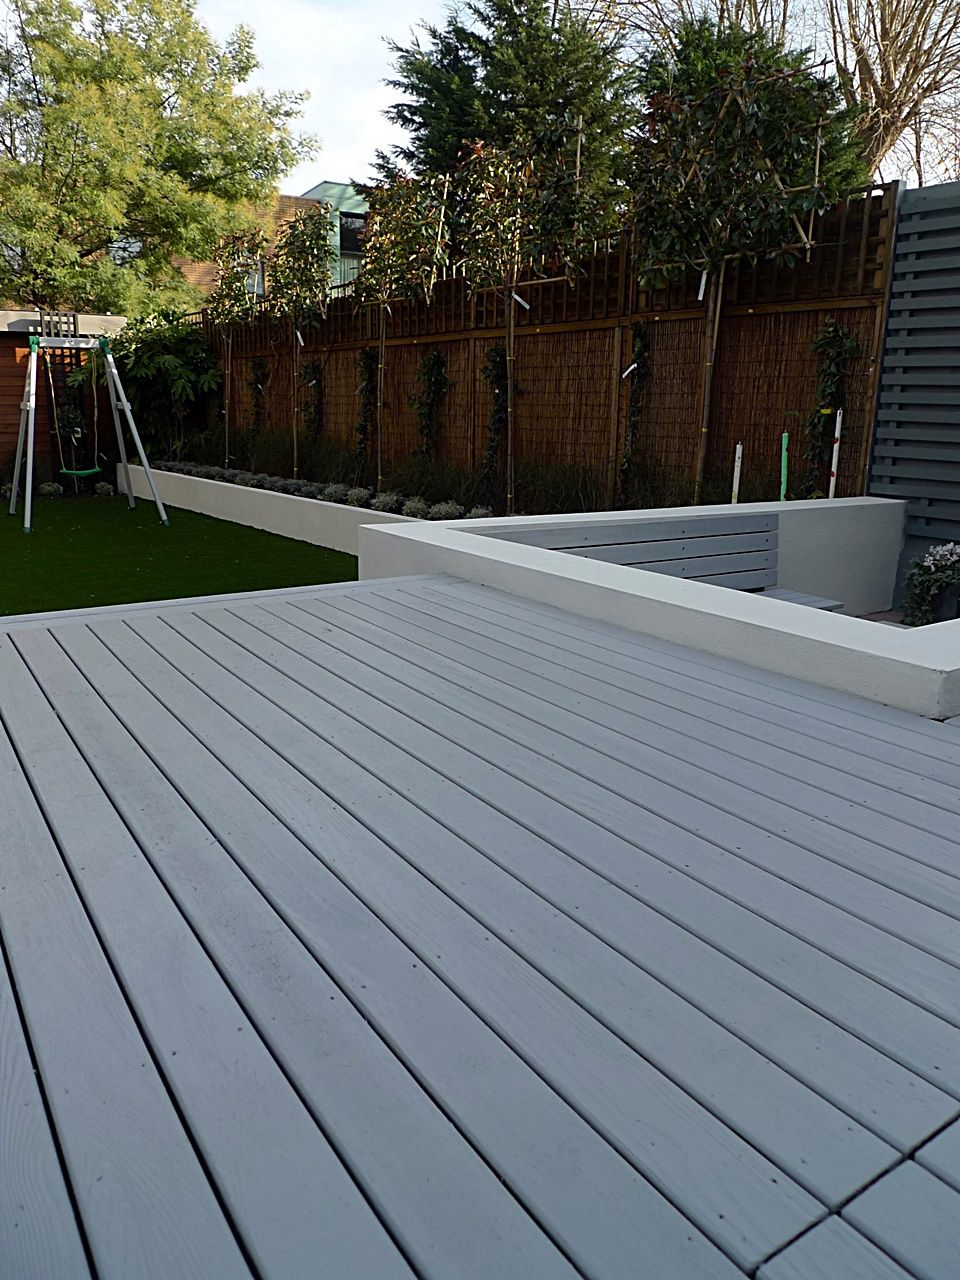 #economical #affordable Wood Flooring Material Type ,cheapest Way To Cover  A Concrete Patio